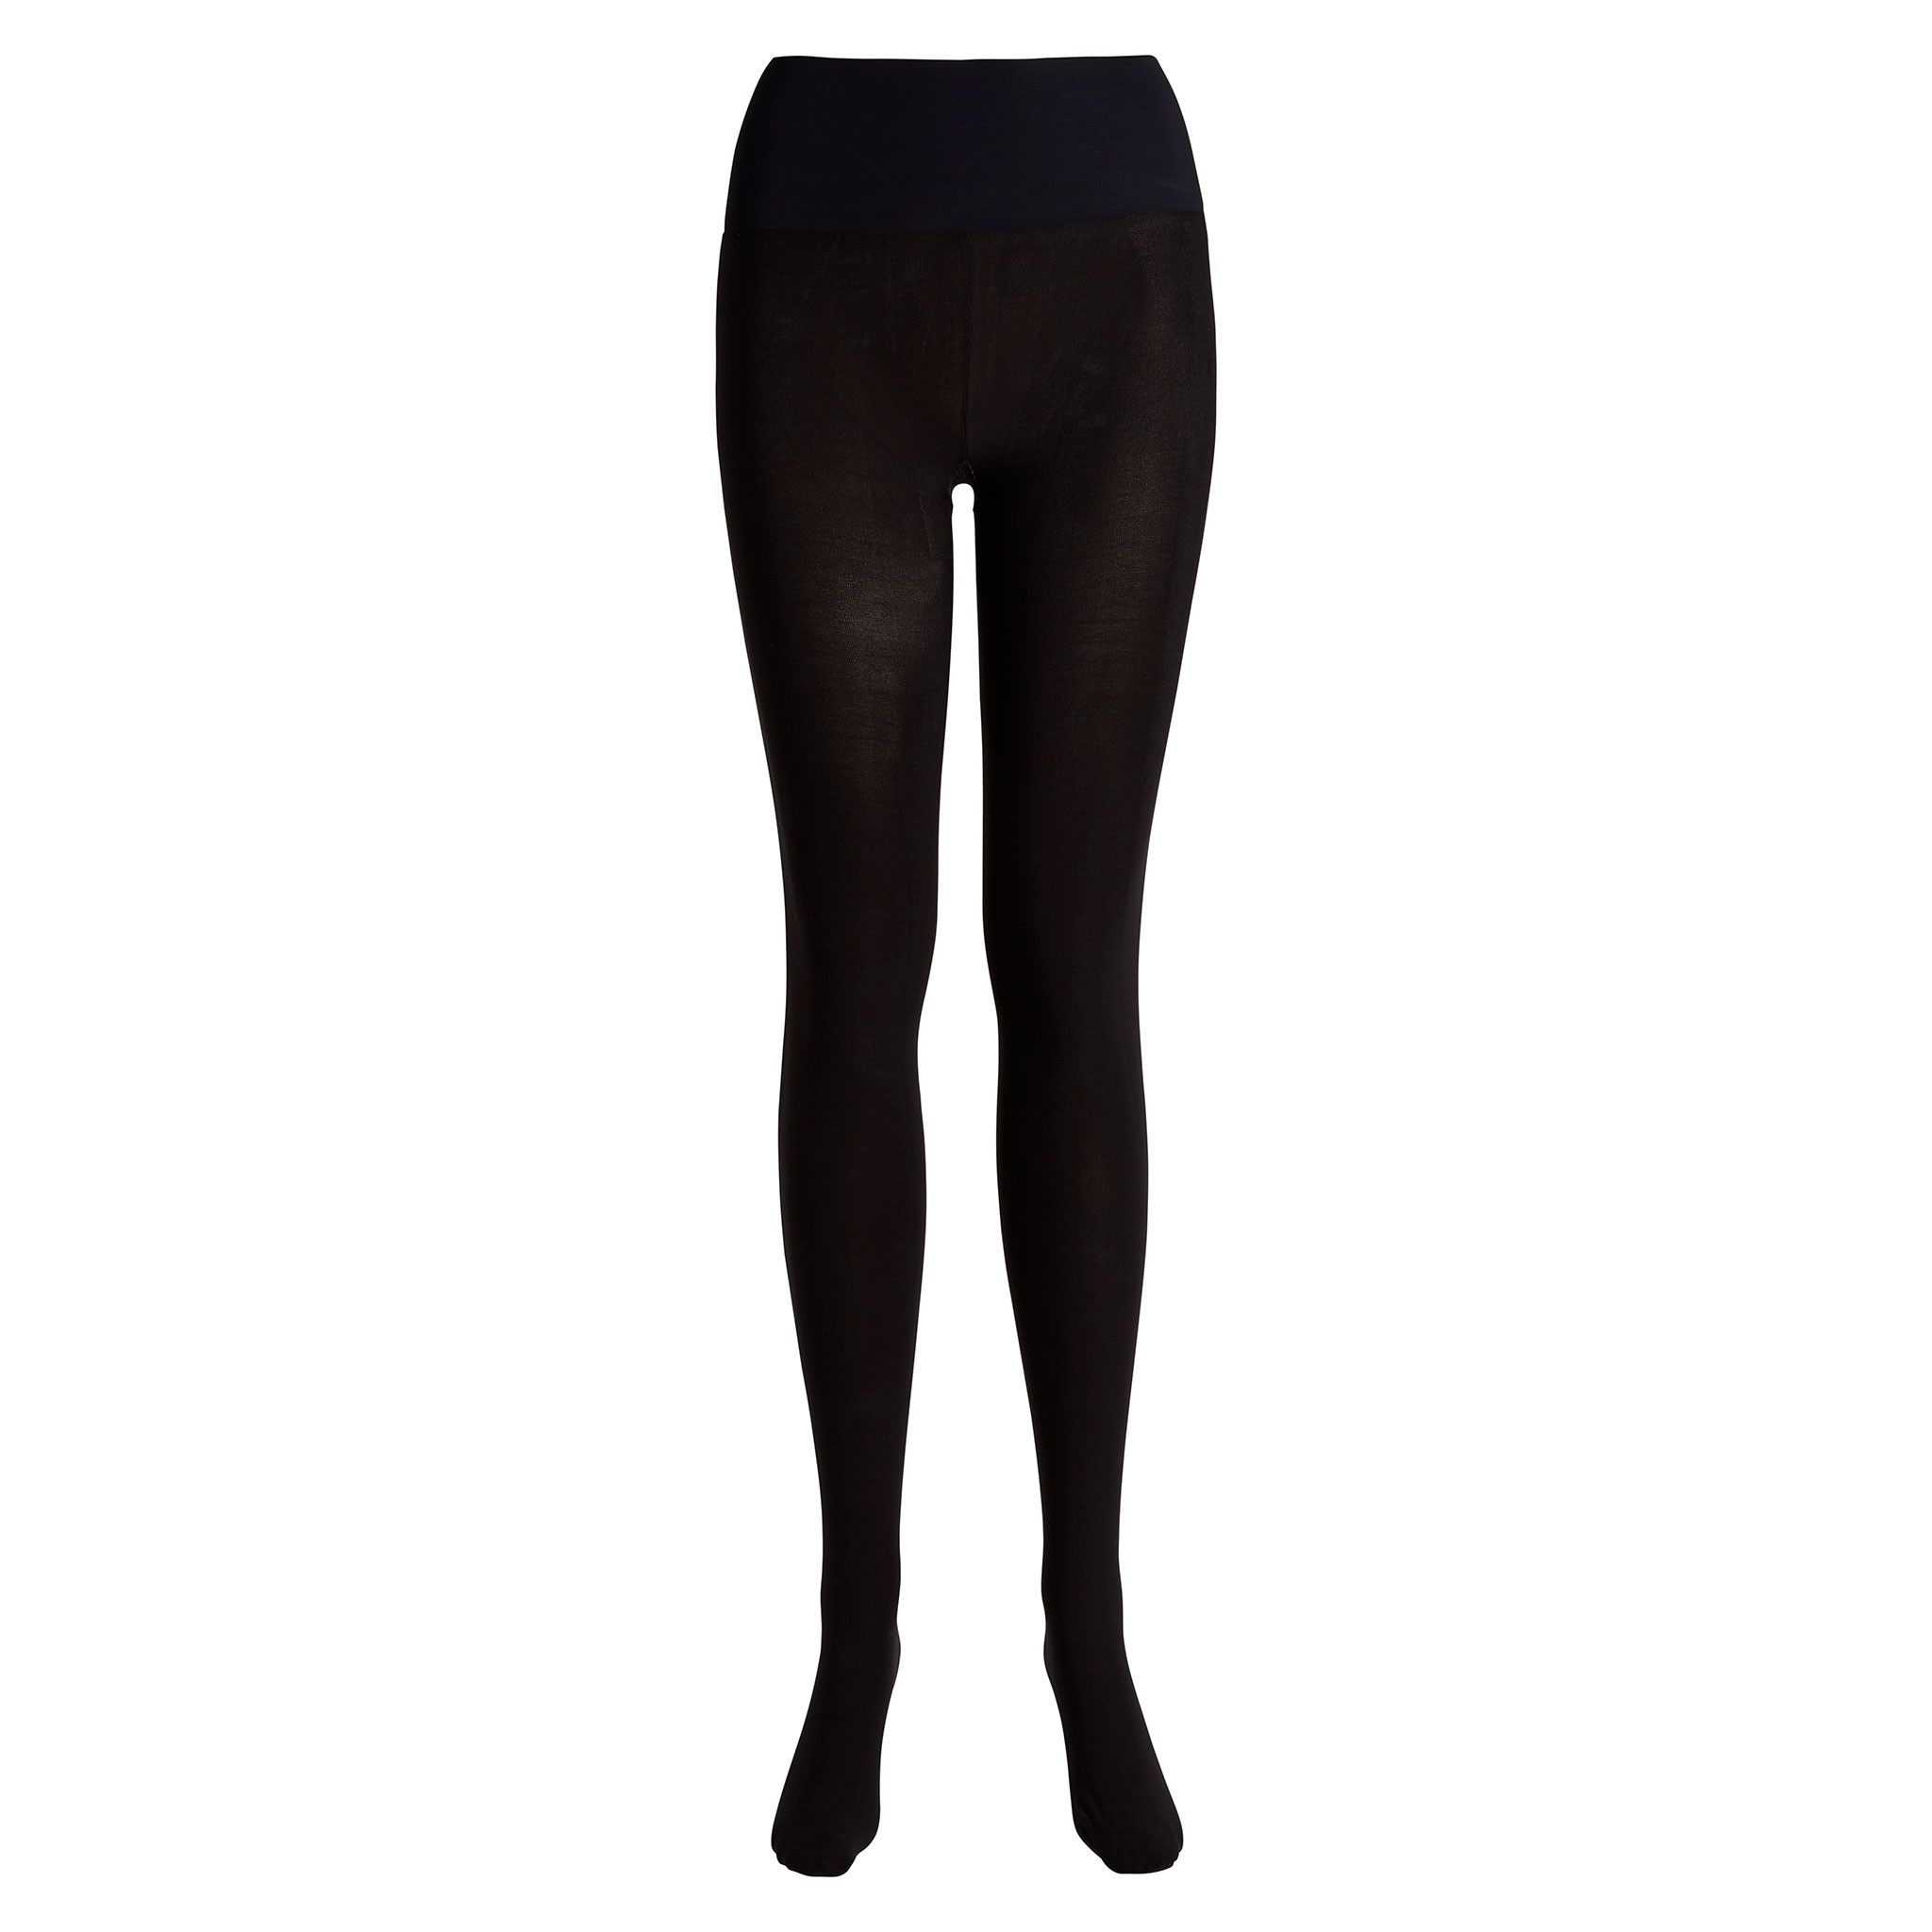 Eclipse opaque matte tights office chic pinterest office chic